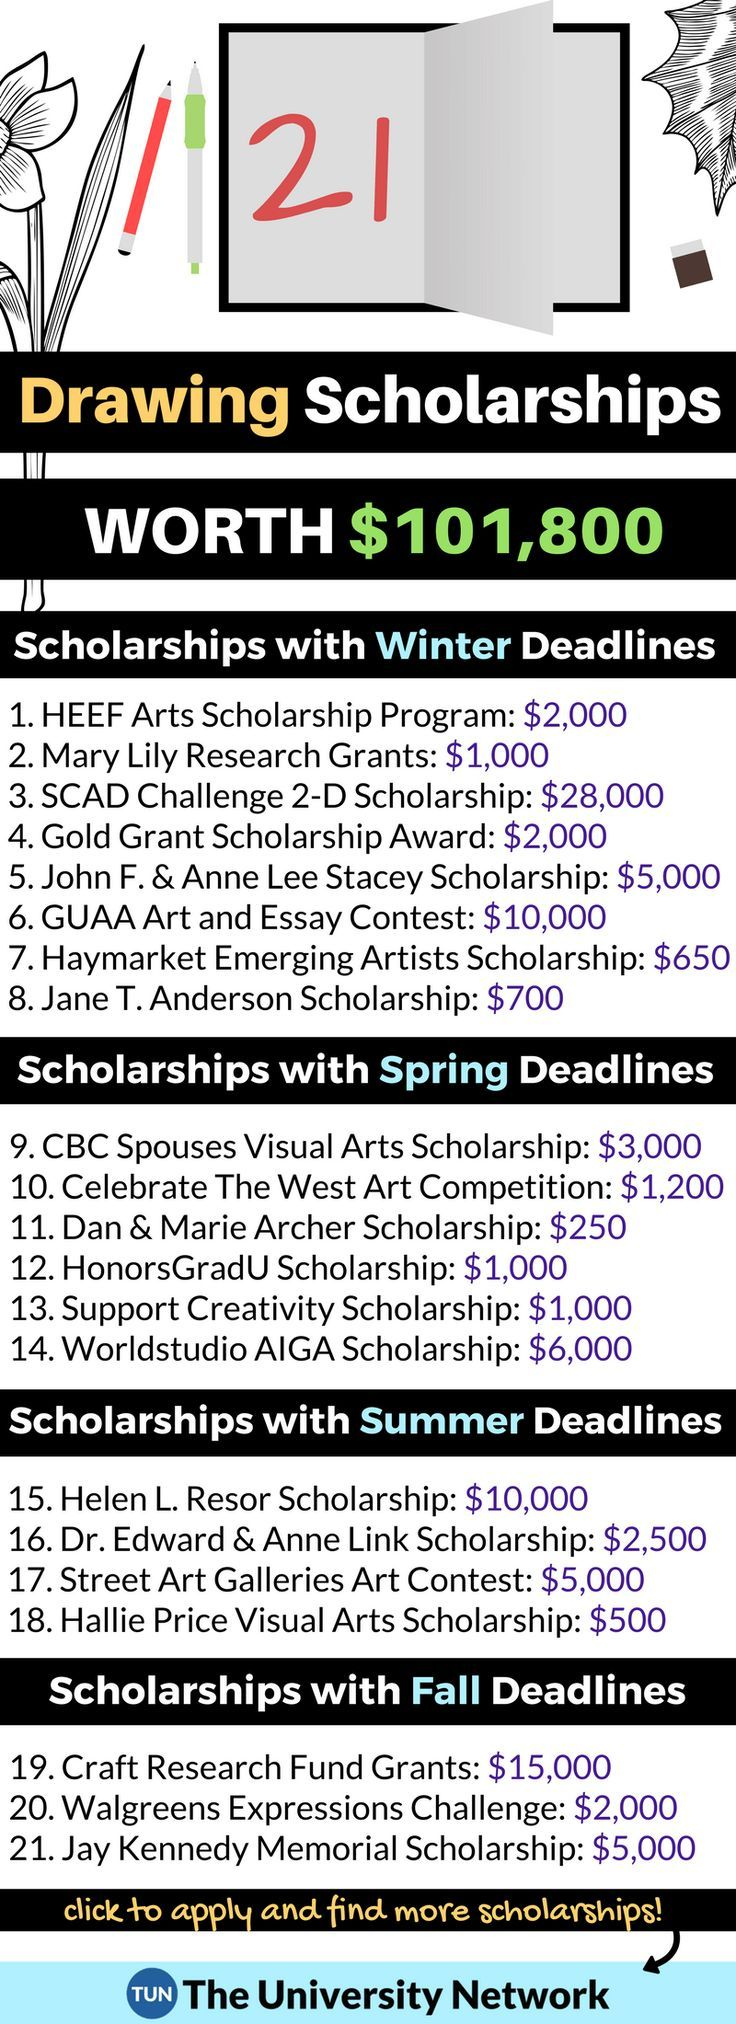 Here is a selection of Drawing Scholarships that are listed on TUN.